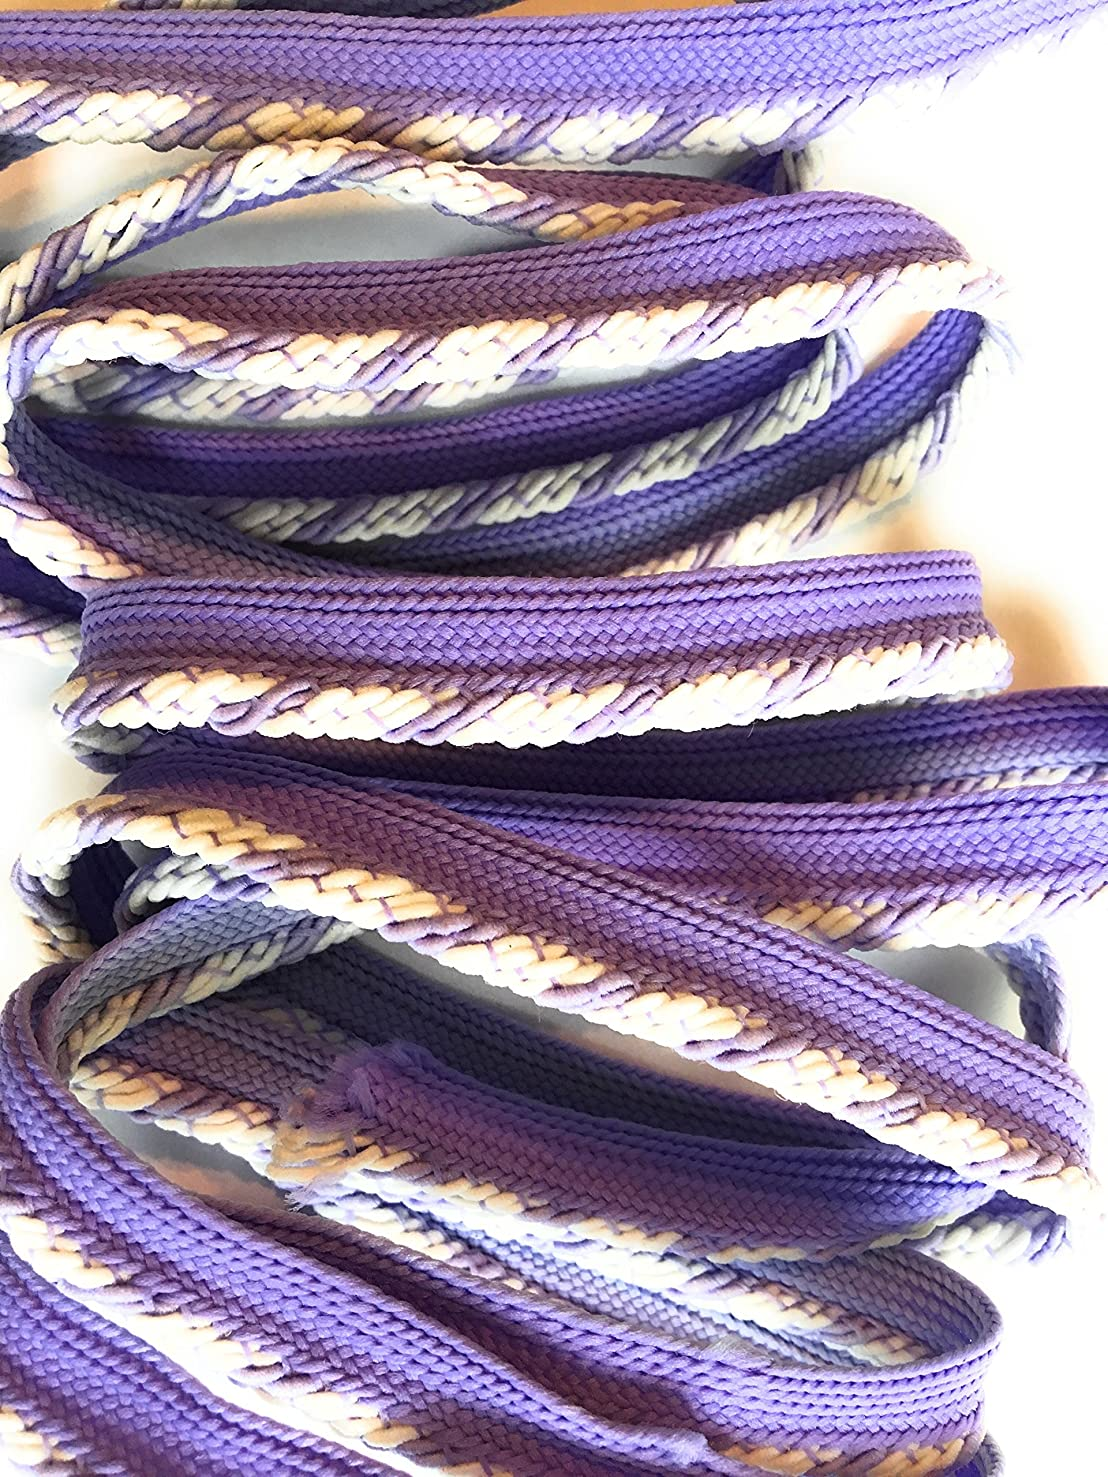 LIP CORDING Multi Color White /Lavender twisted -Cord-edge -Piping Trim for Clothing Pillows, Lamps, Draperies 5 Yards Pi-129